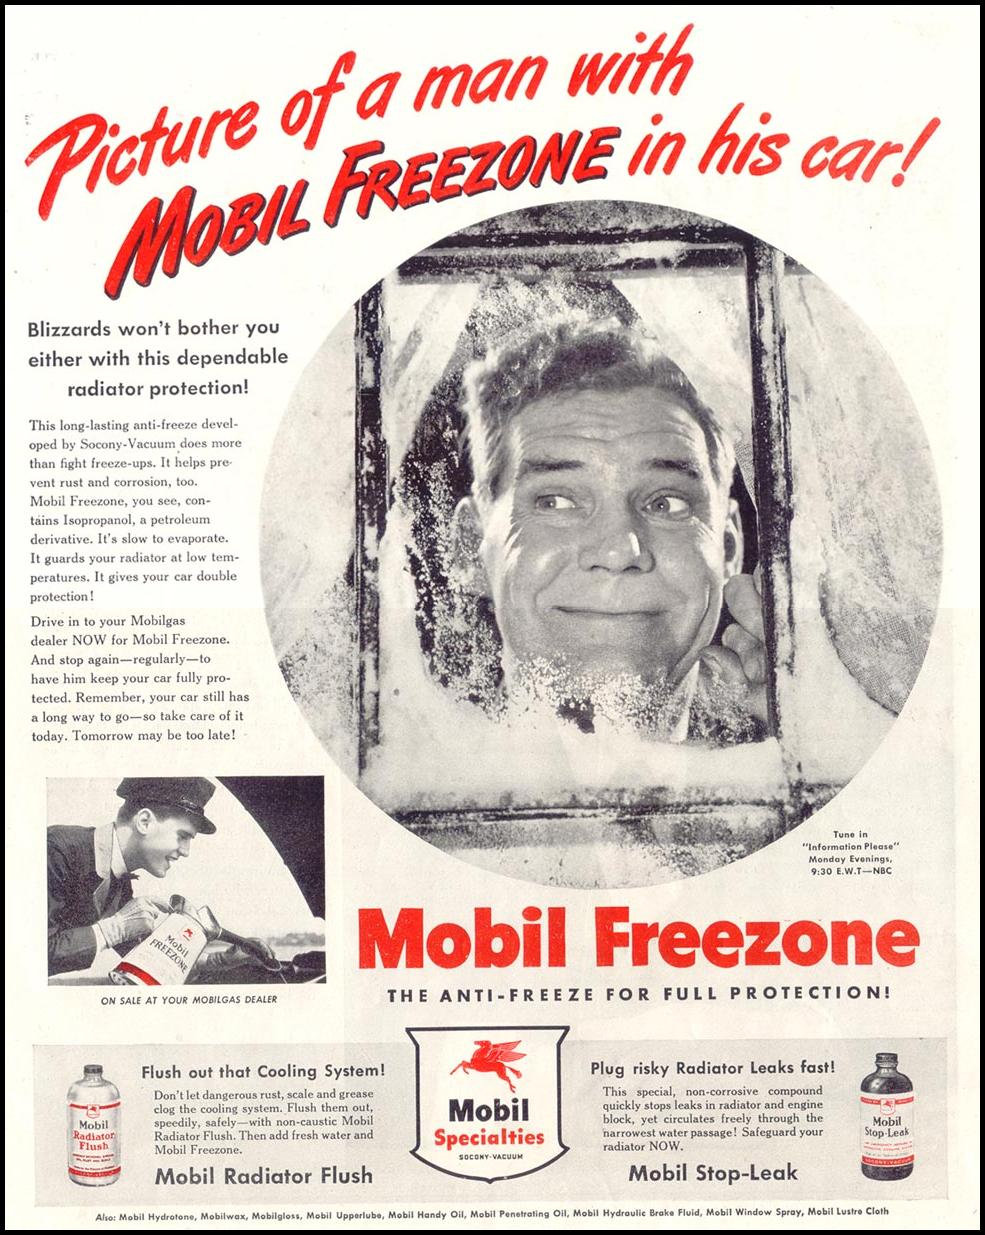 MOBIL FREEZONE ANTIFREEZE SATURDAY EVENING POST 10/06/1945